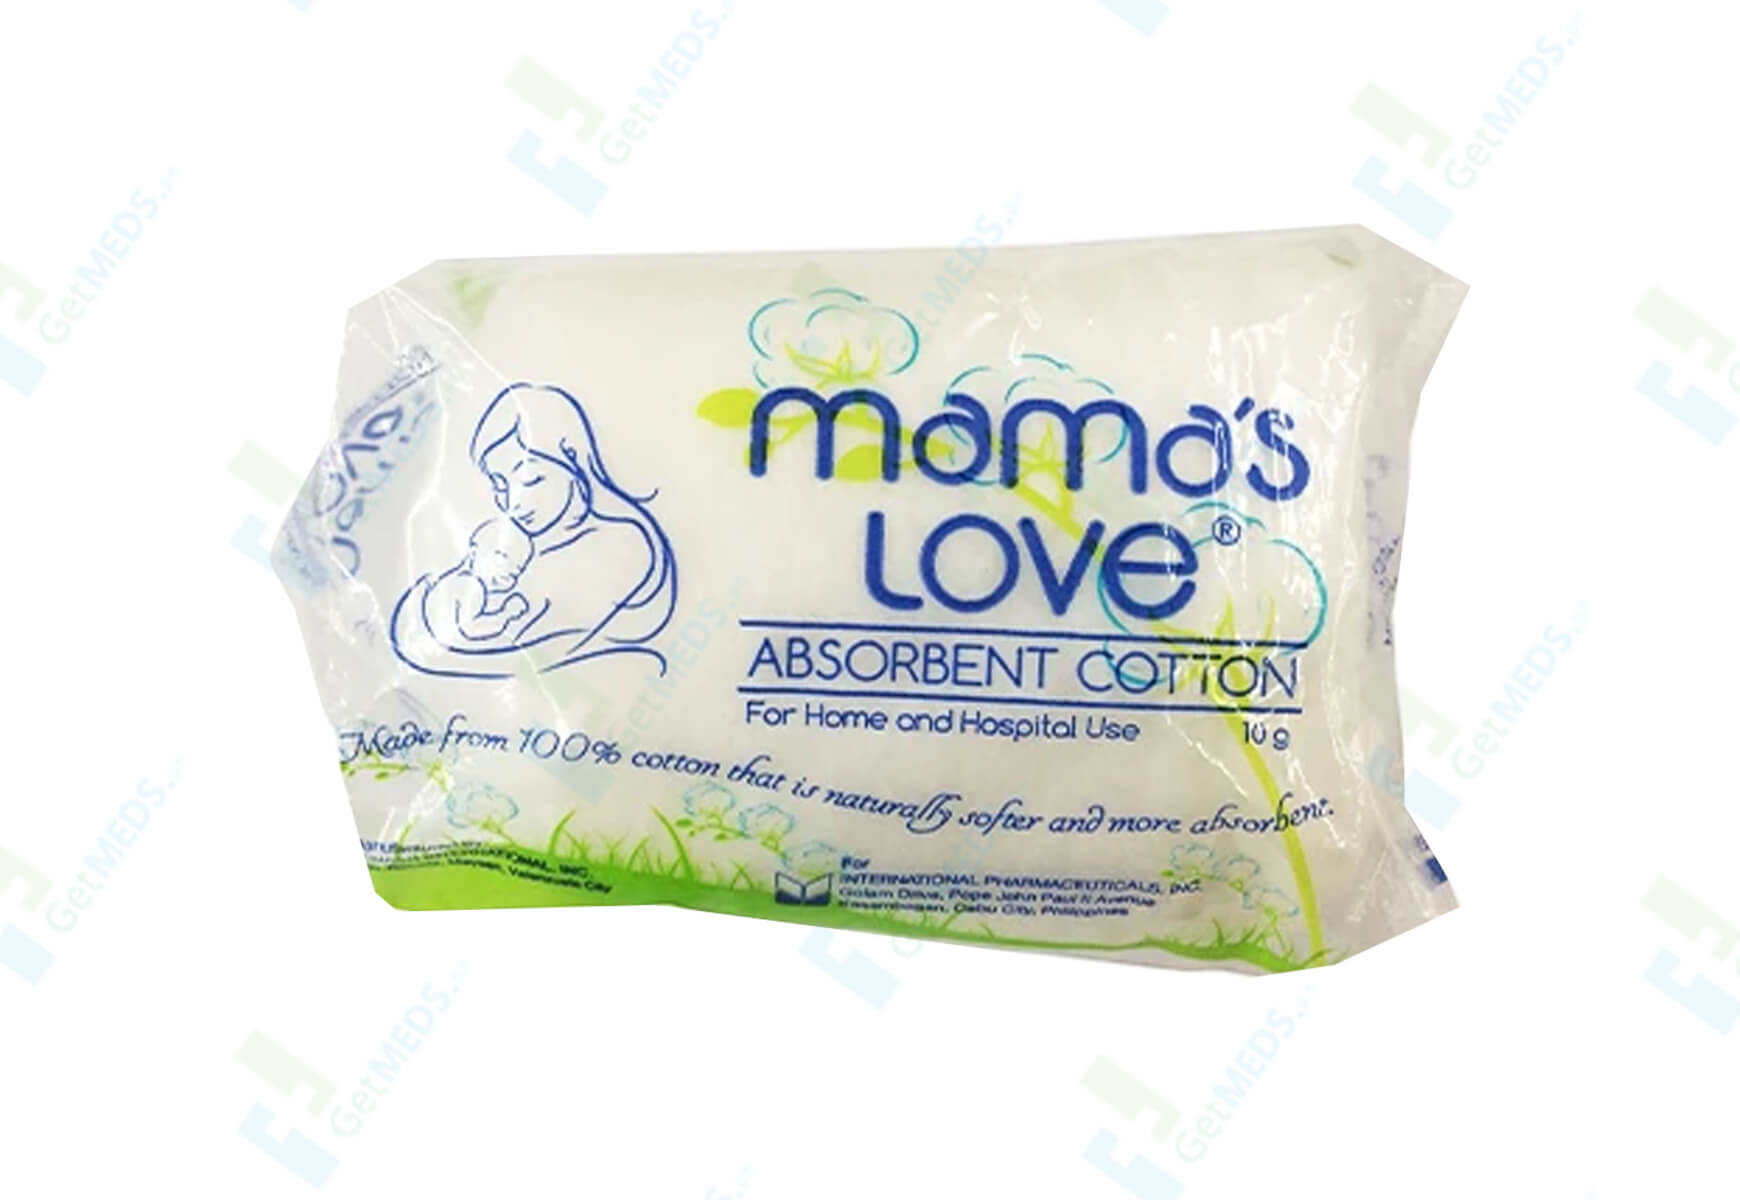 Mama's Love Absorbent Cotton Roll